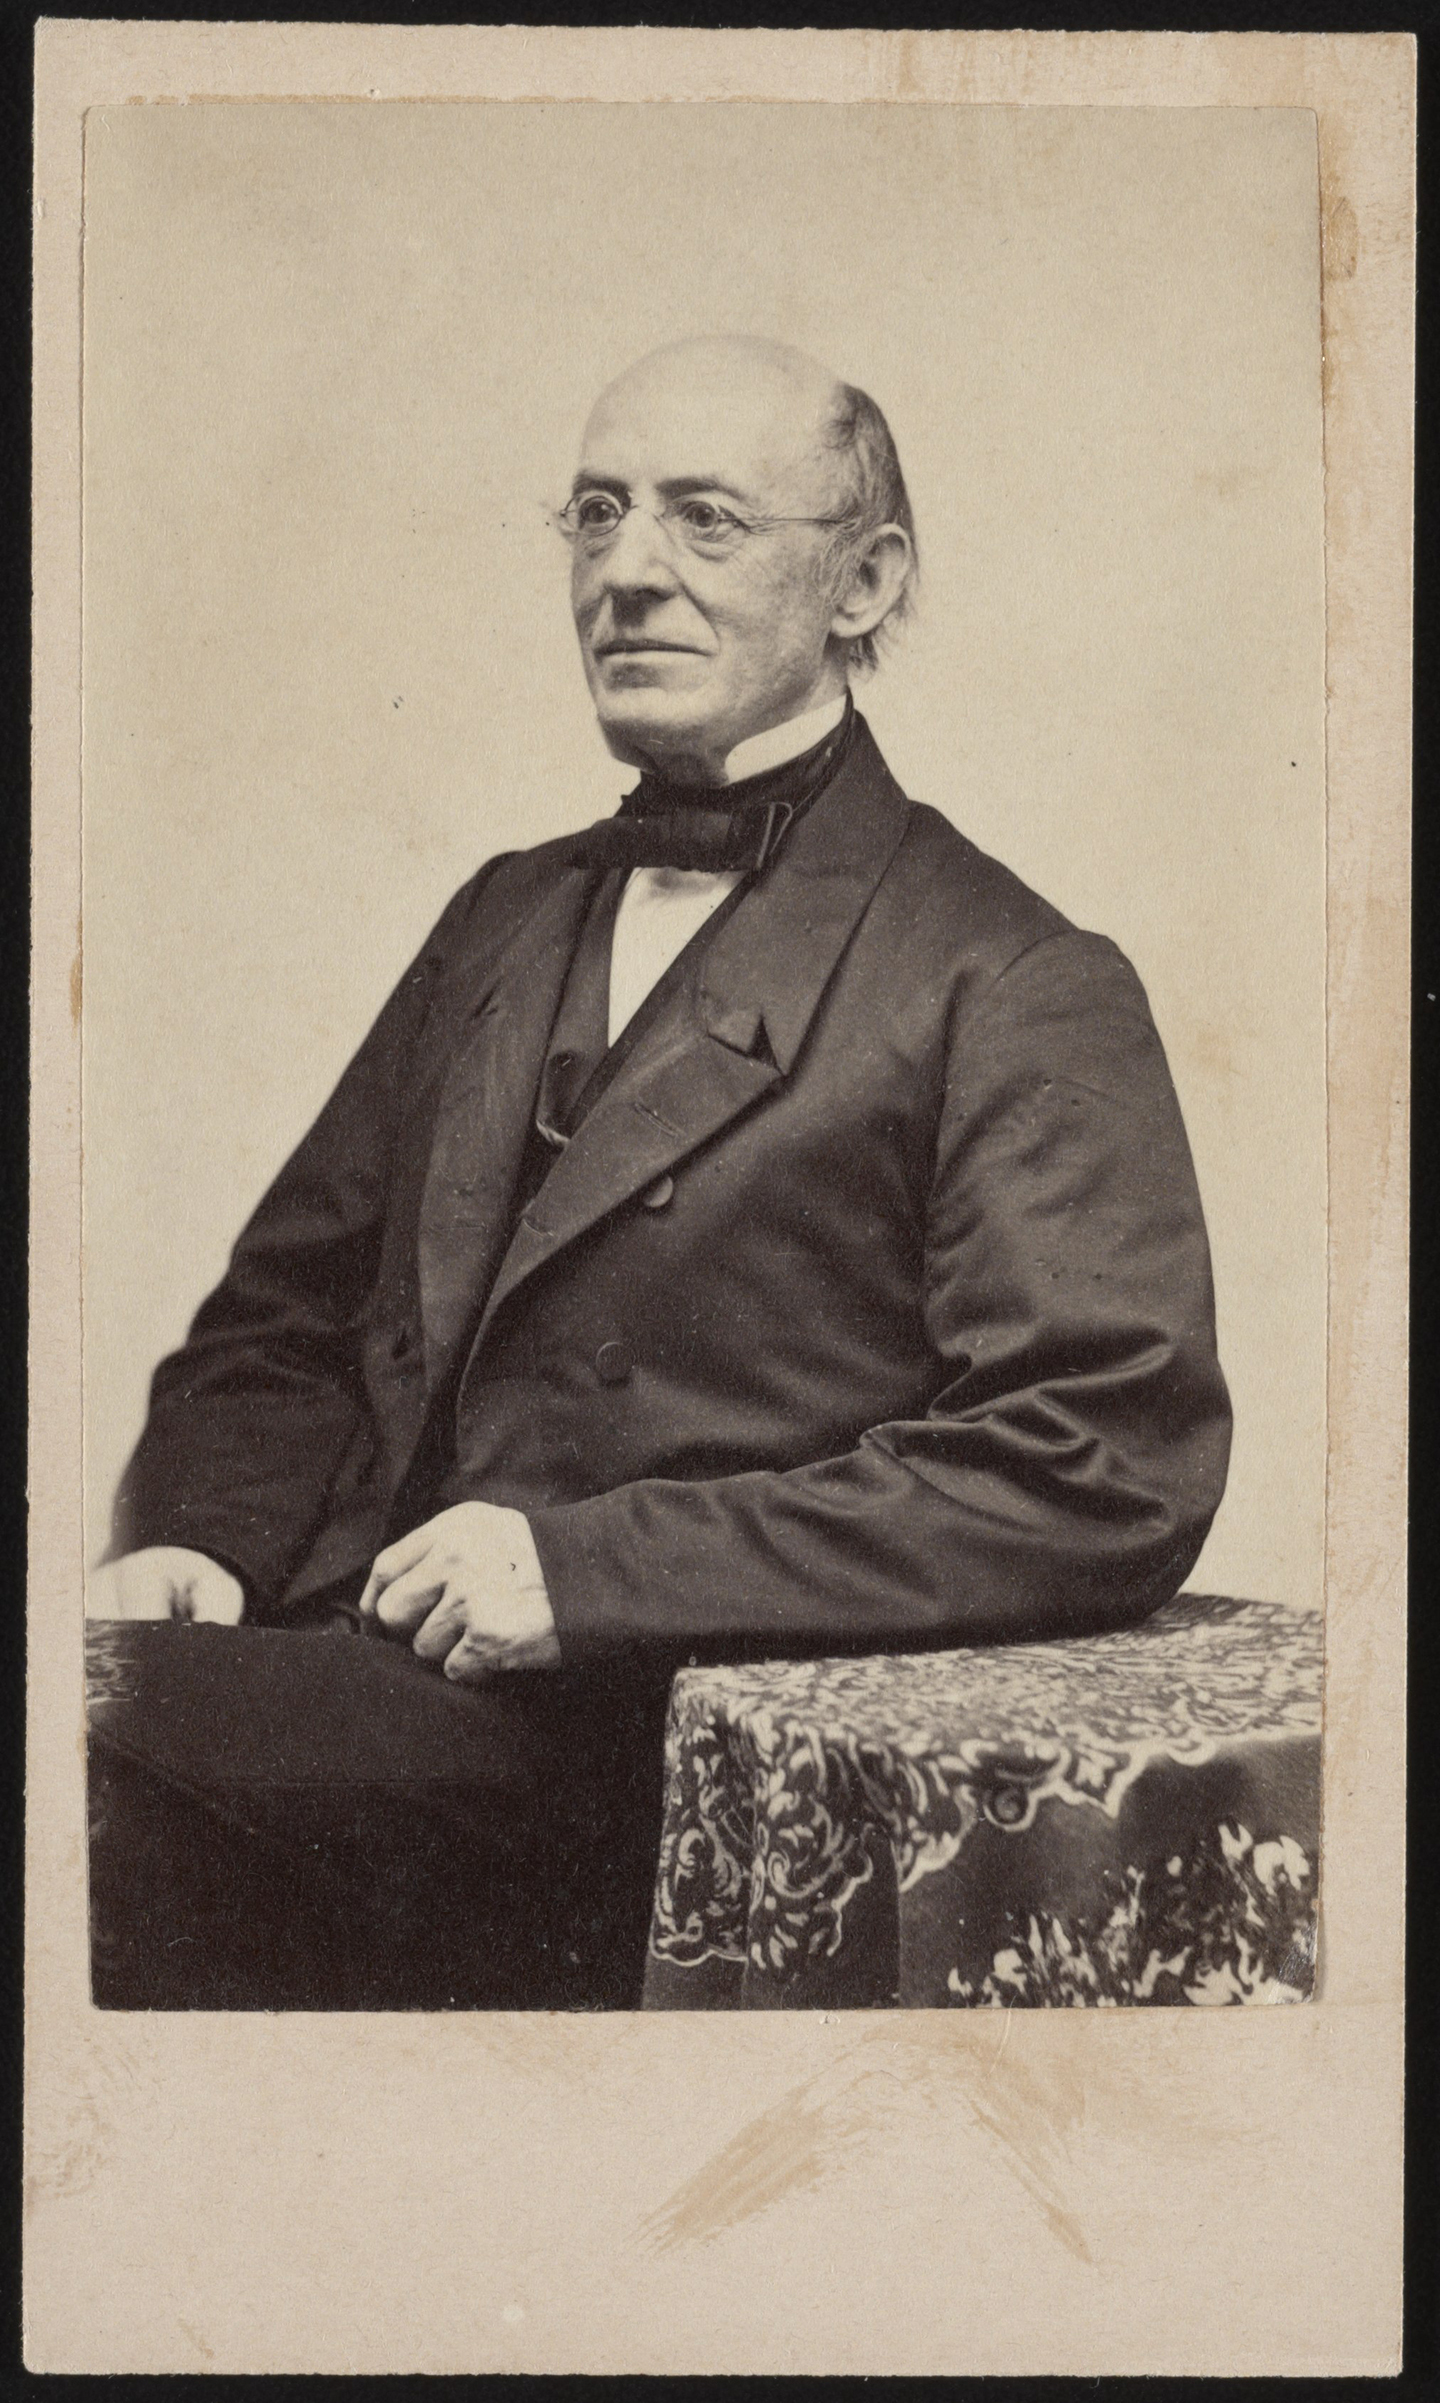 William Lloyd Garrison, abolitionist, journalist, and editor of The Liberator Abstract